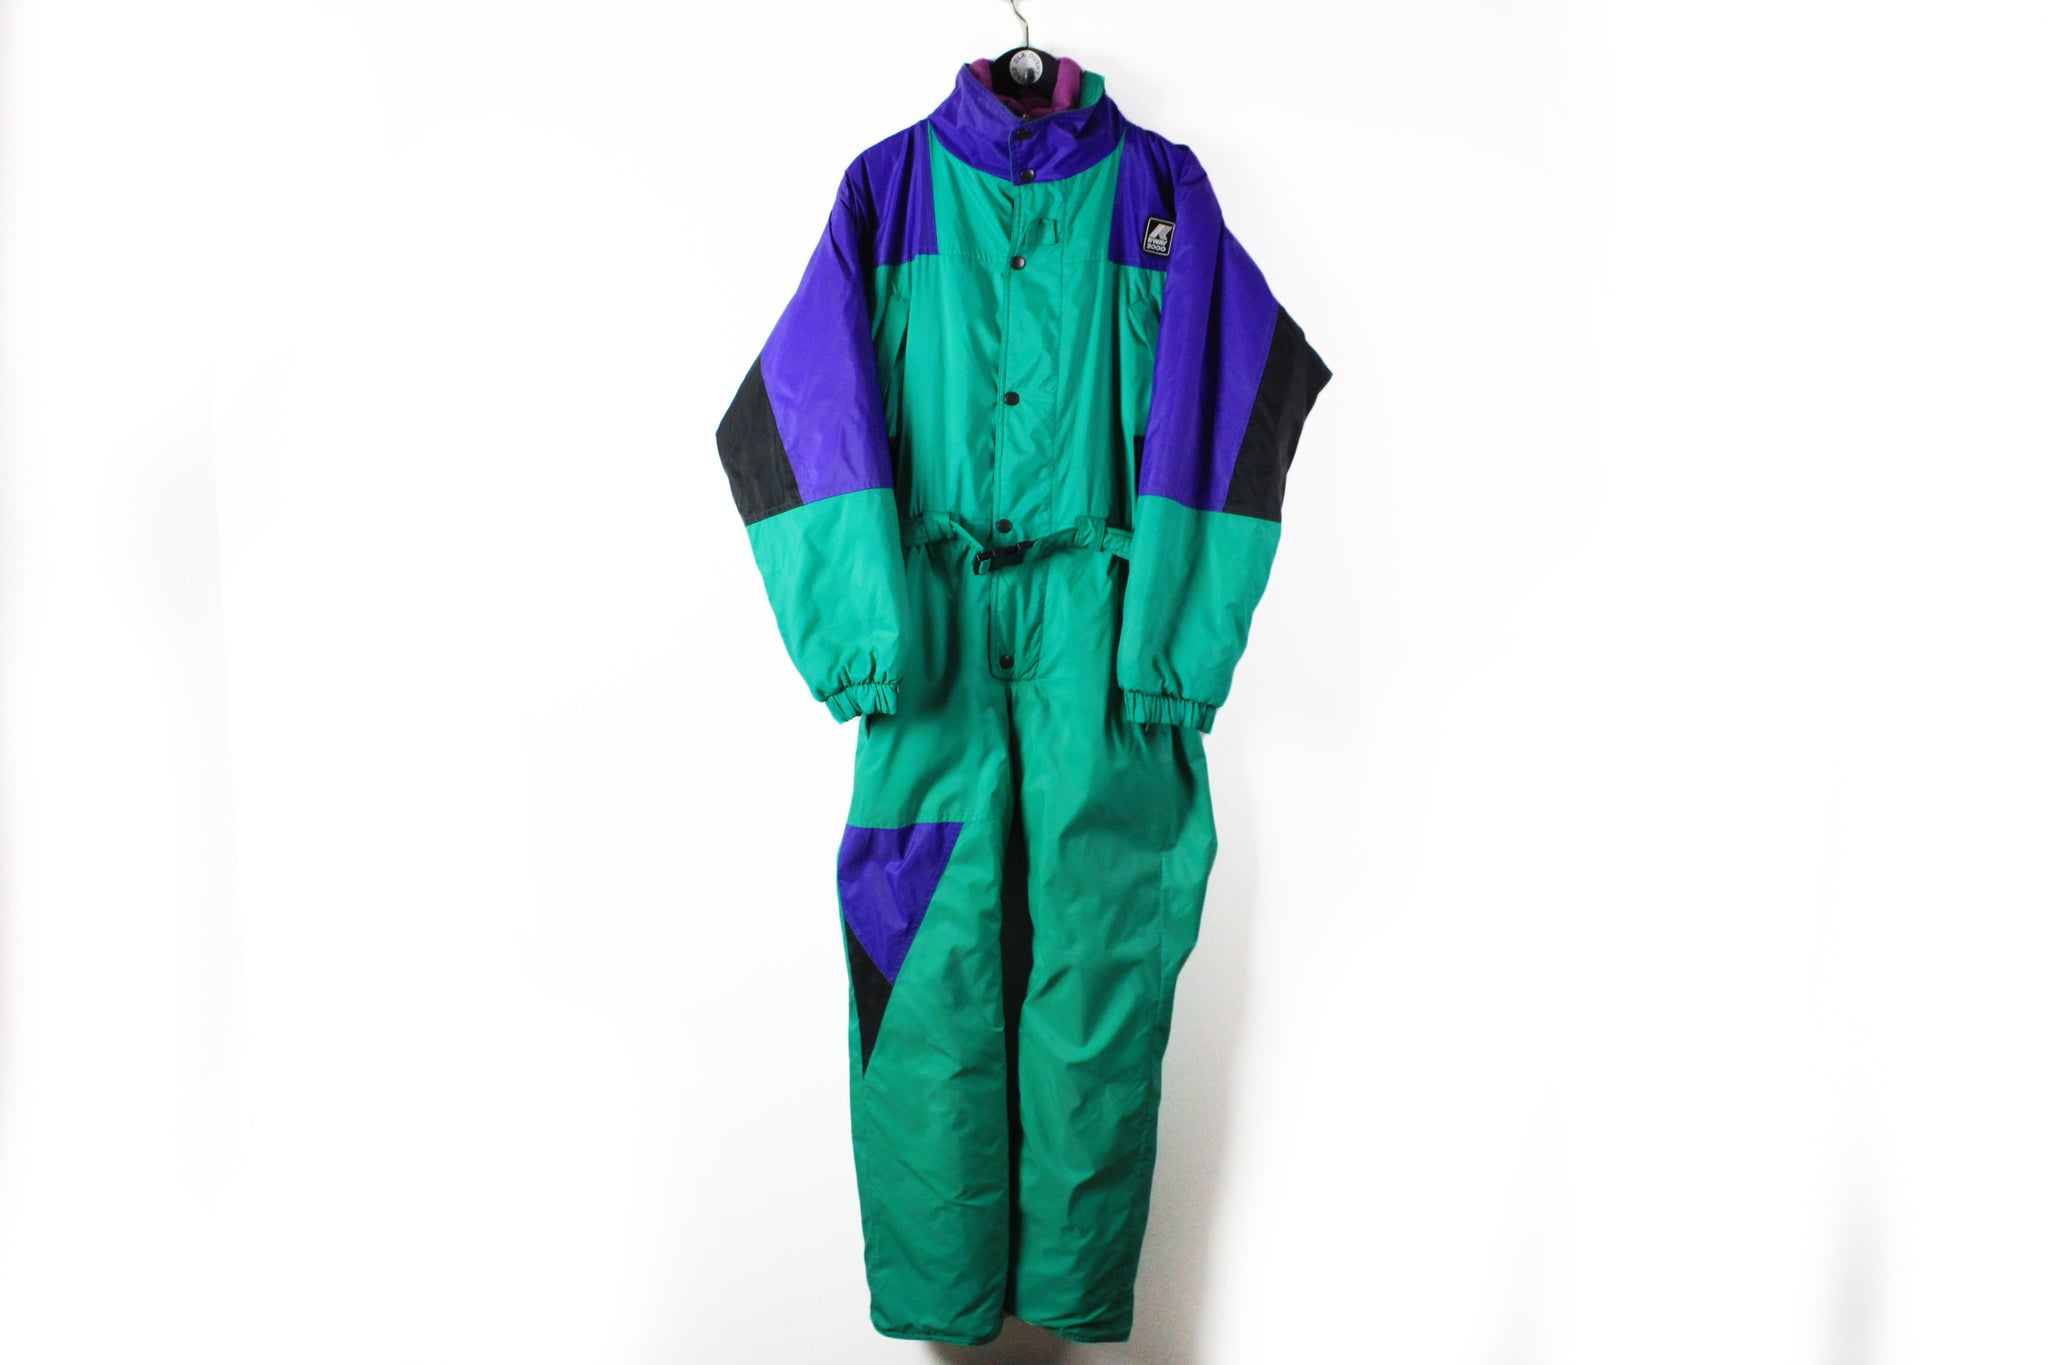 Vintage K-Way 1992 Albertville Ski Suit Small / Medium green blue 90s retro style jumpsuit skisuit coverall jacket